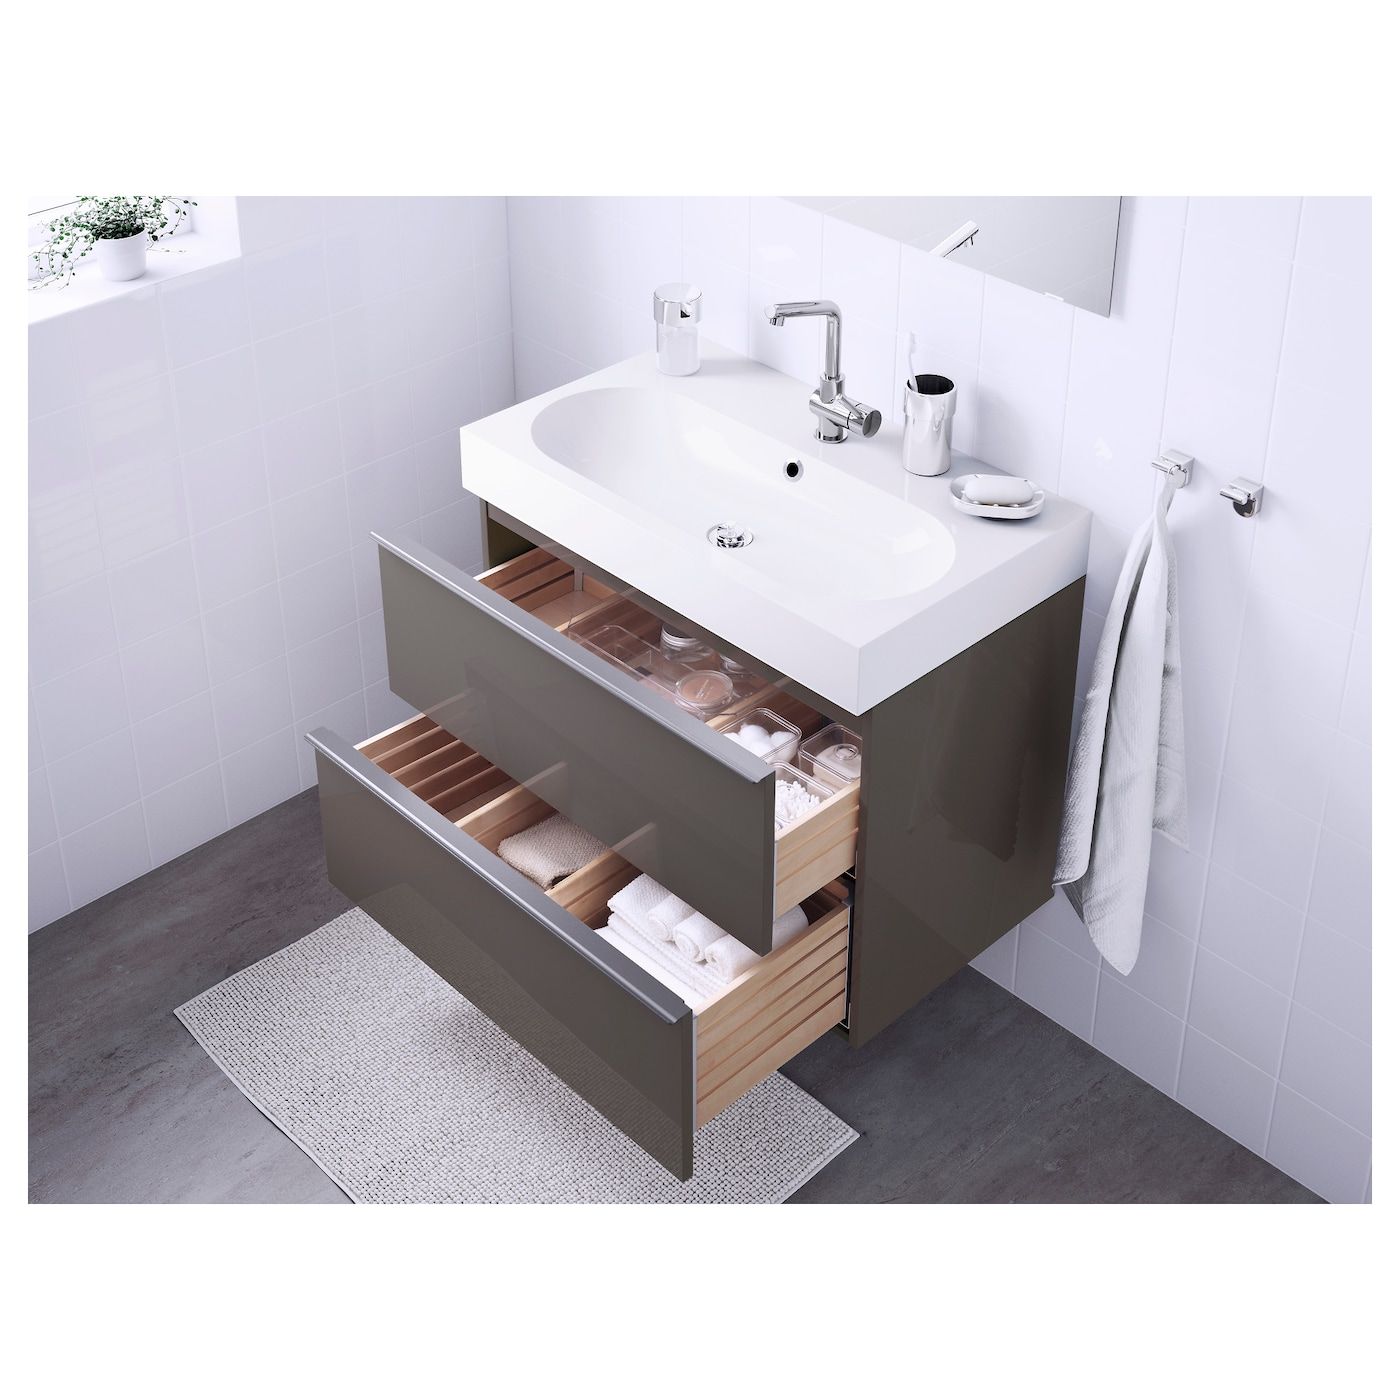 br viken godmorgon meuble lavabo 2tir brillant gris 80x49x68 cm ikea. Black Bedroom Furniture Sets. Home Design Ideas